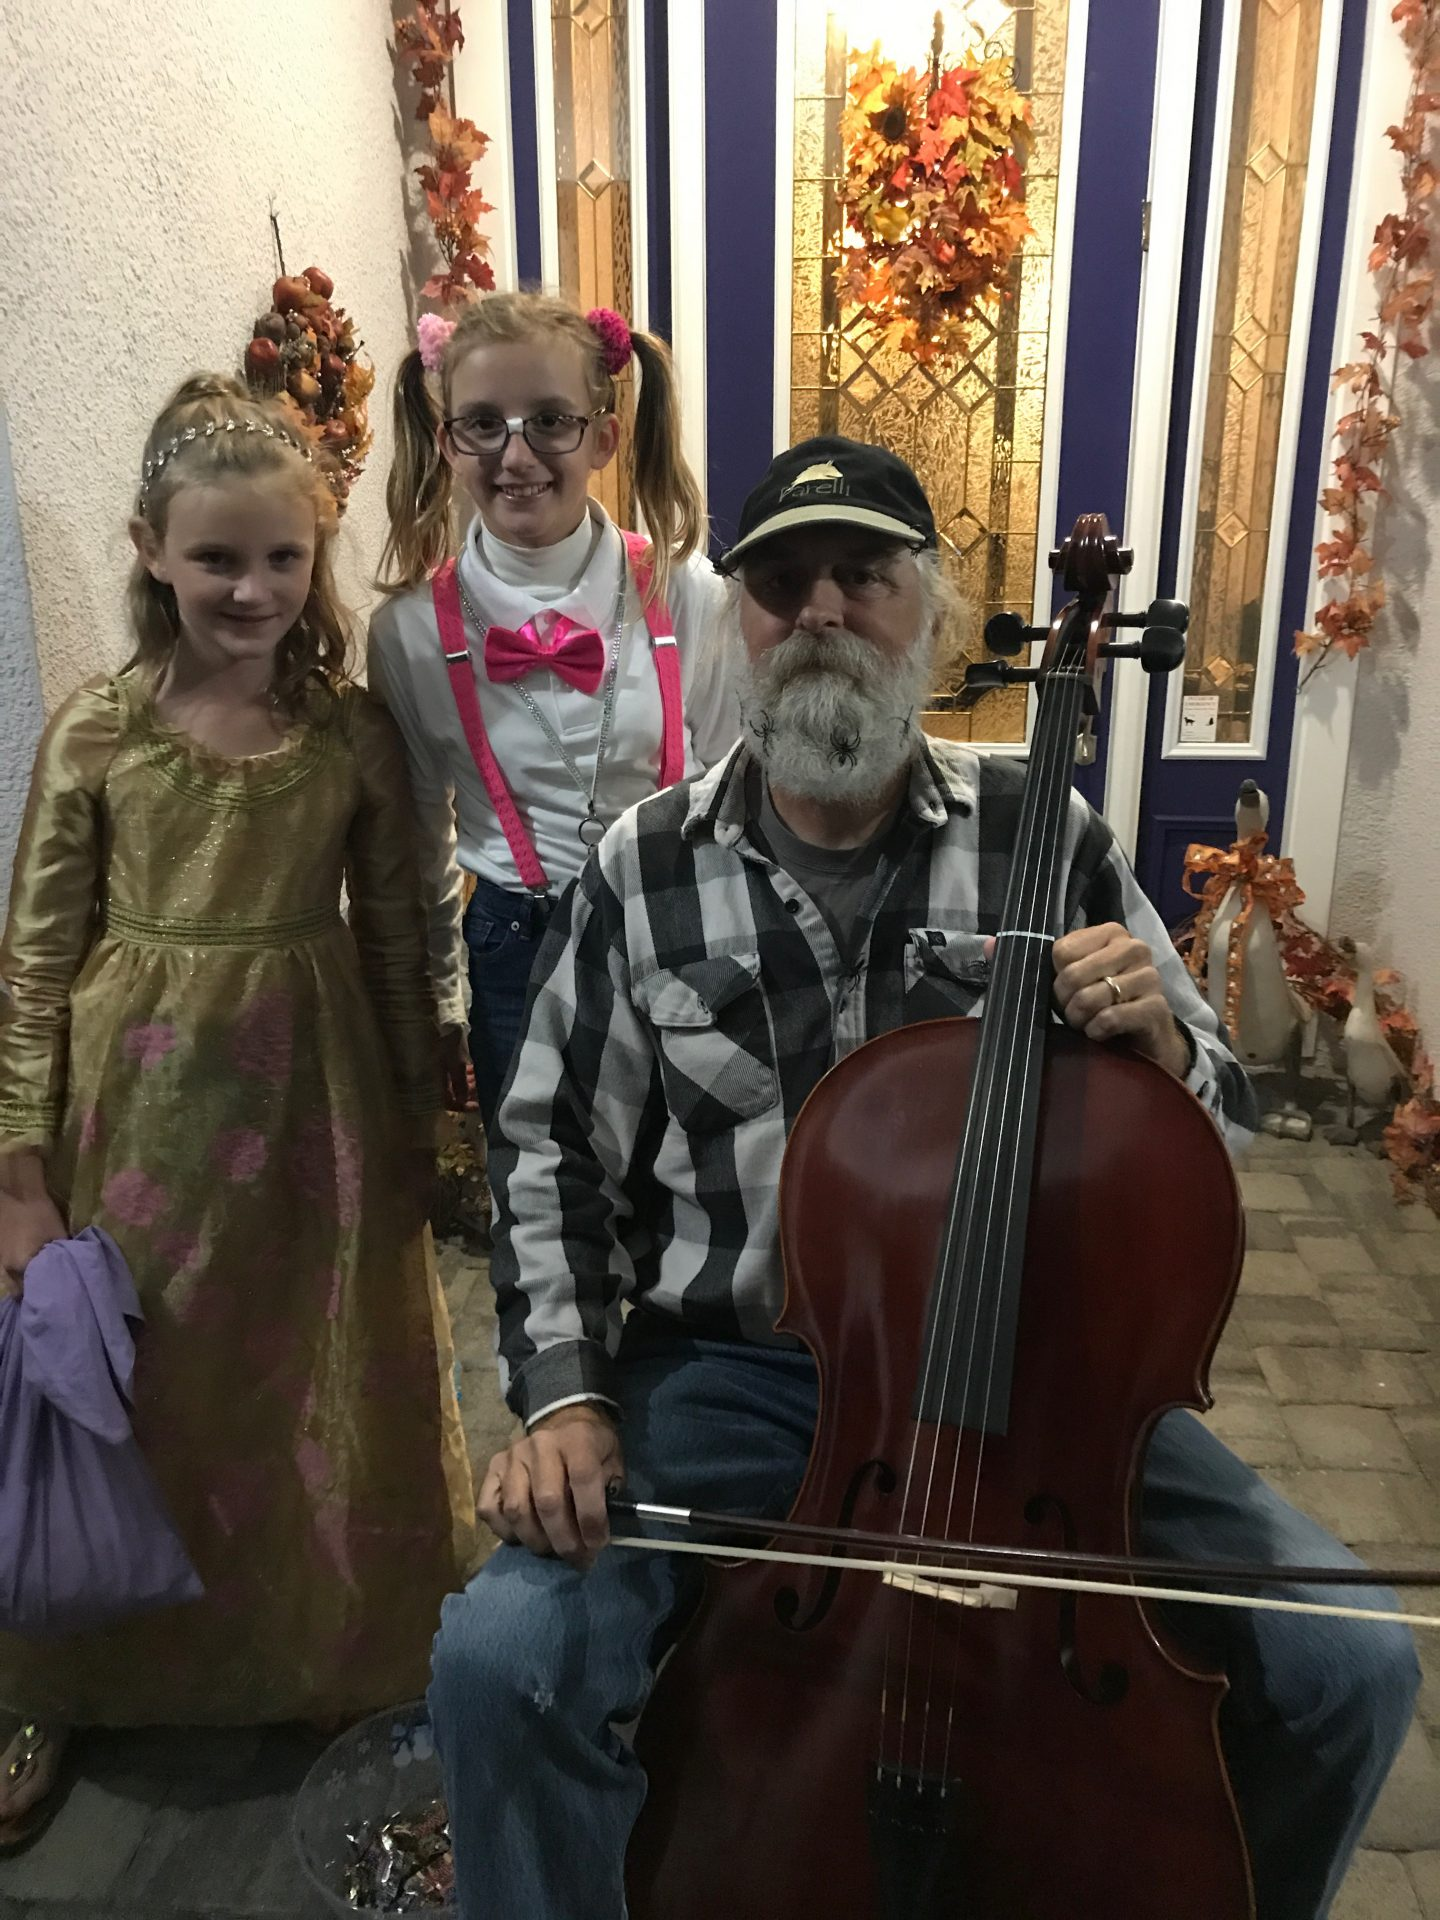 Dave loved playing cello for trick or treaters on Halloween.